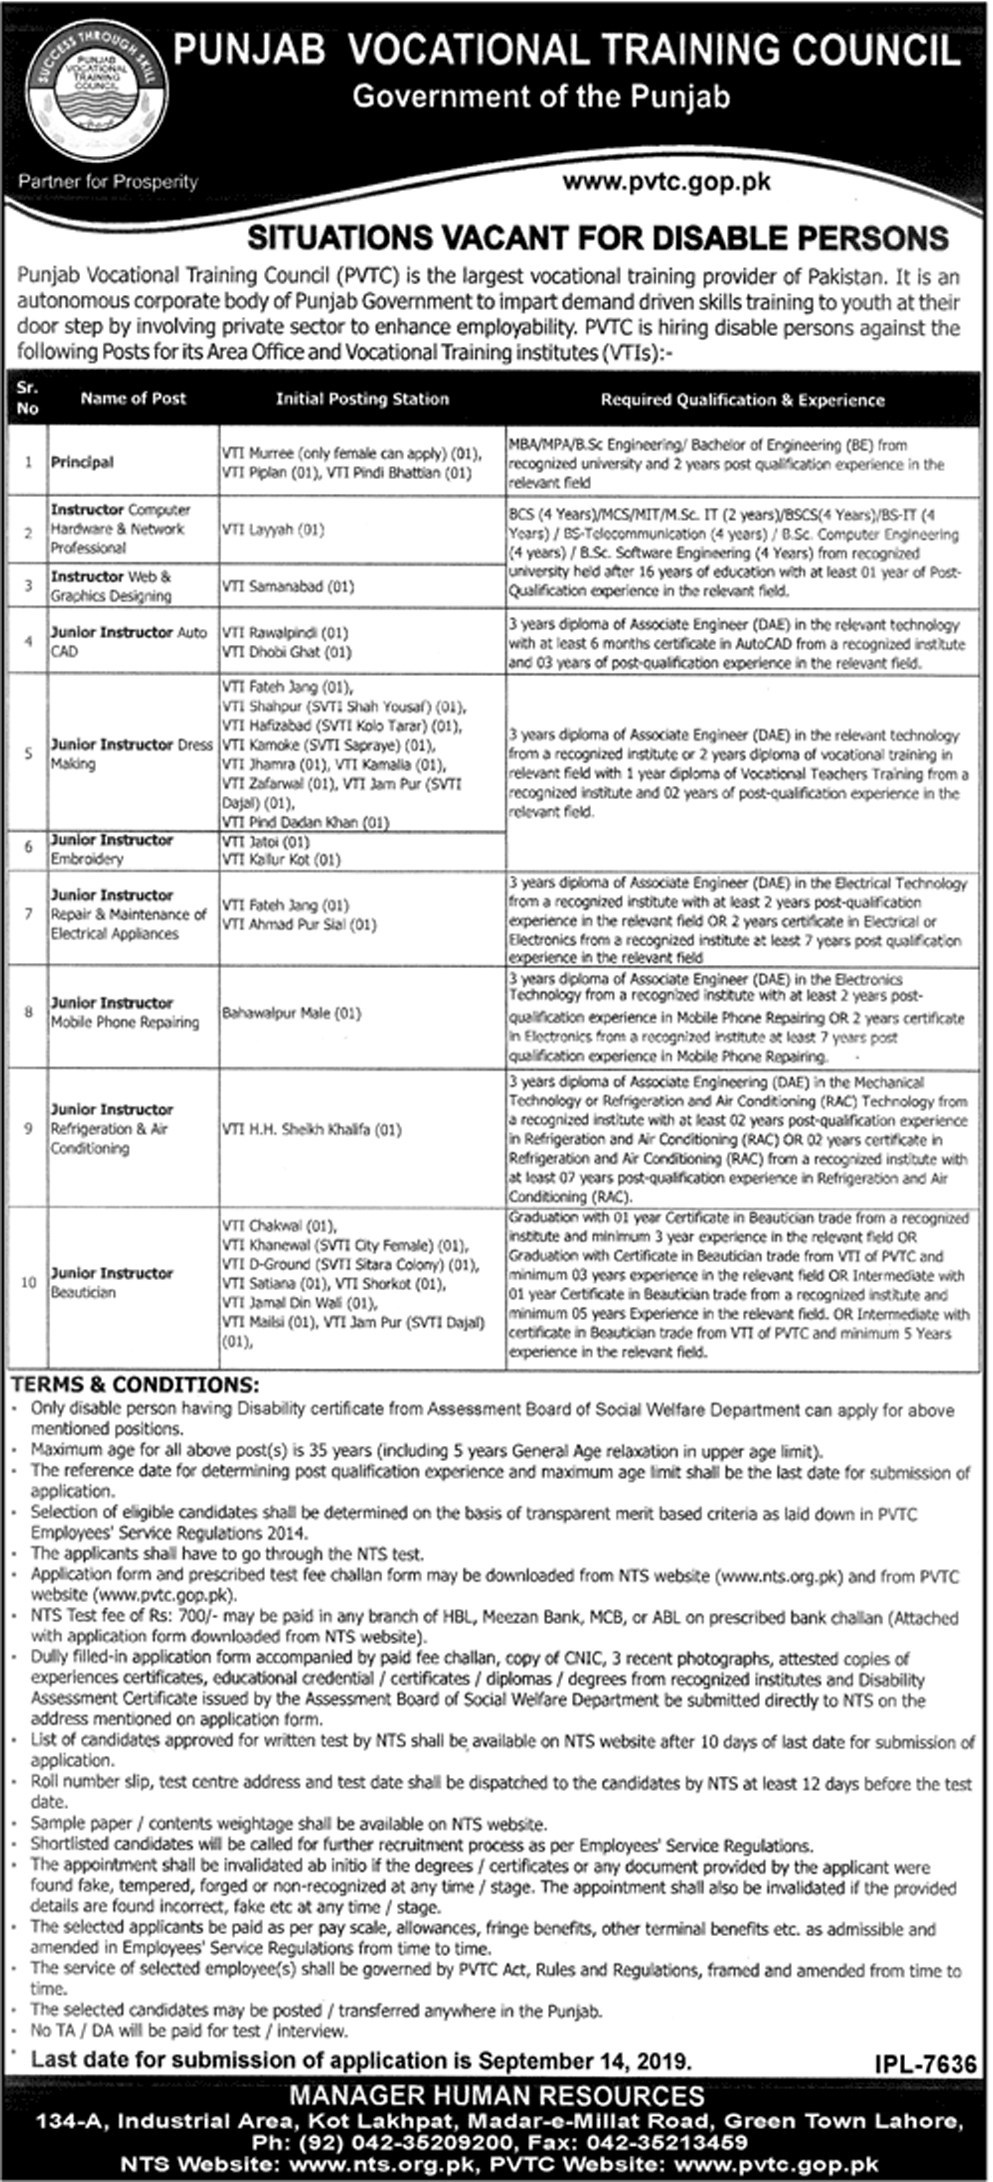 Punjab Vocational Training Council PVTC Jobs Disabled Person NTS Test Roll No Slip